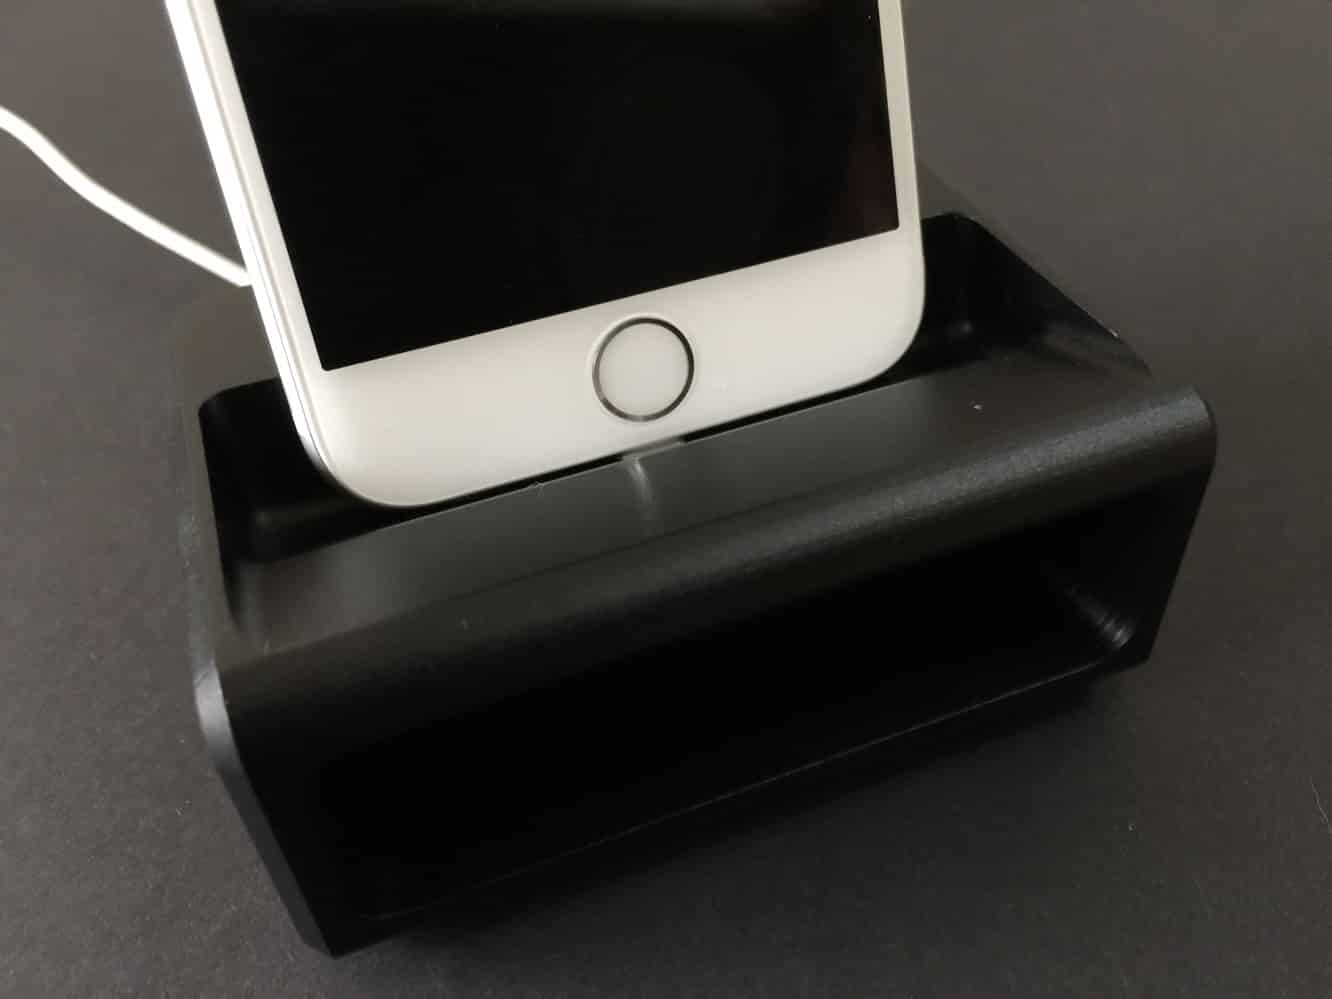 Review: Coogobox Symphony Dock for iPhone 6 and iPhone 6 Plus